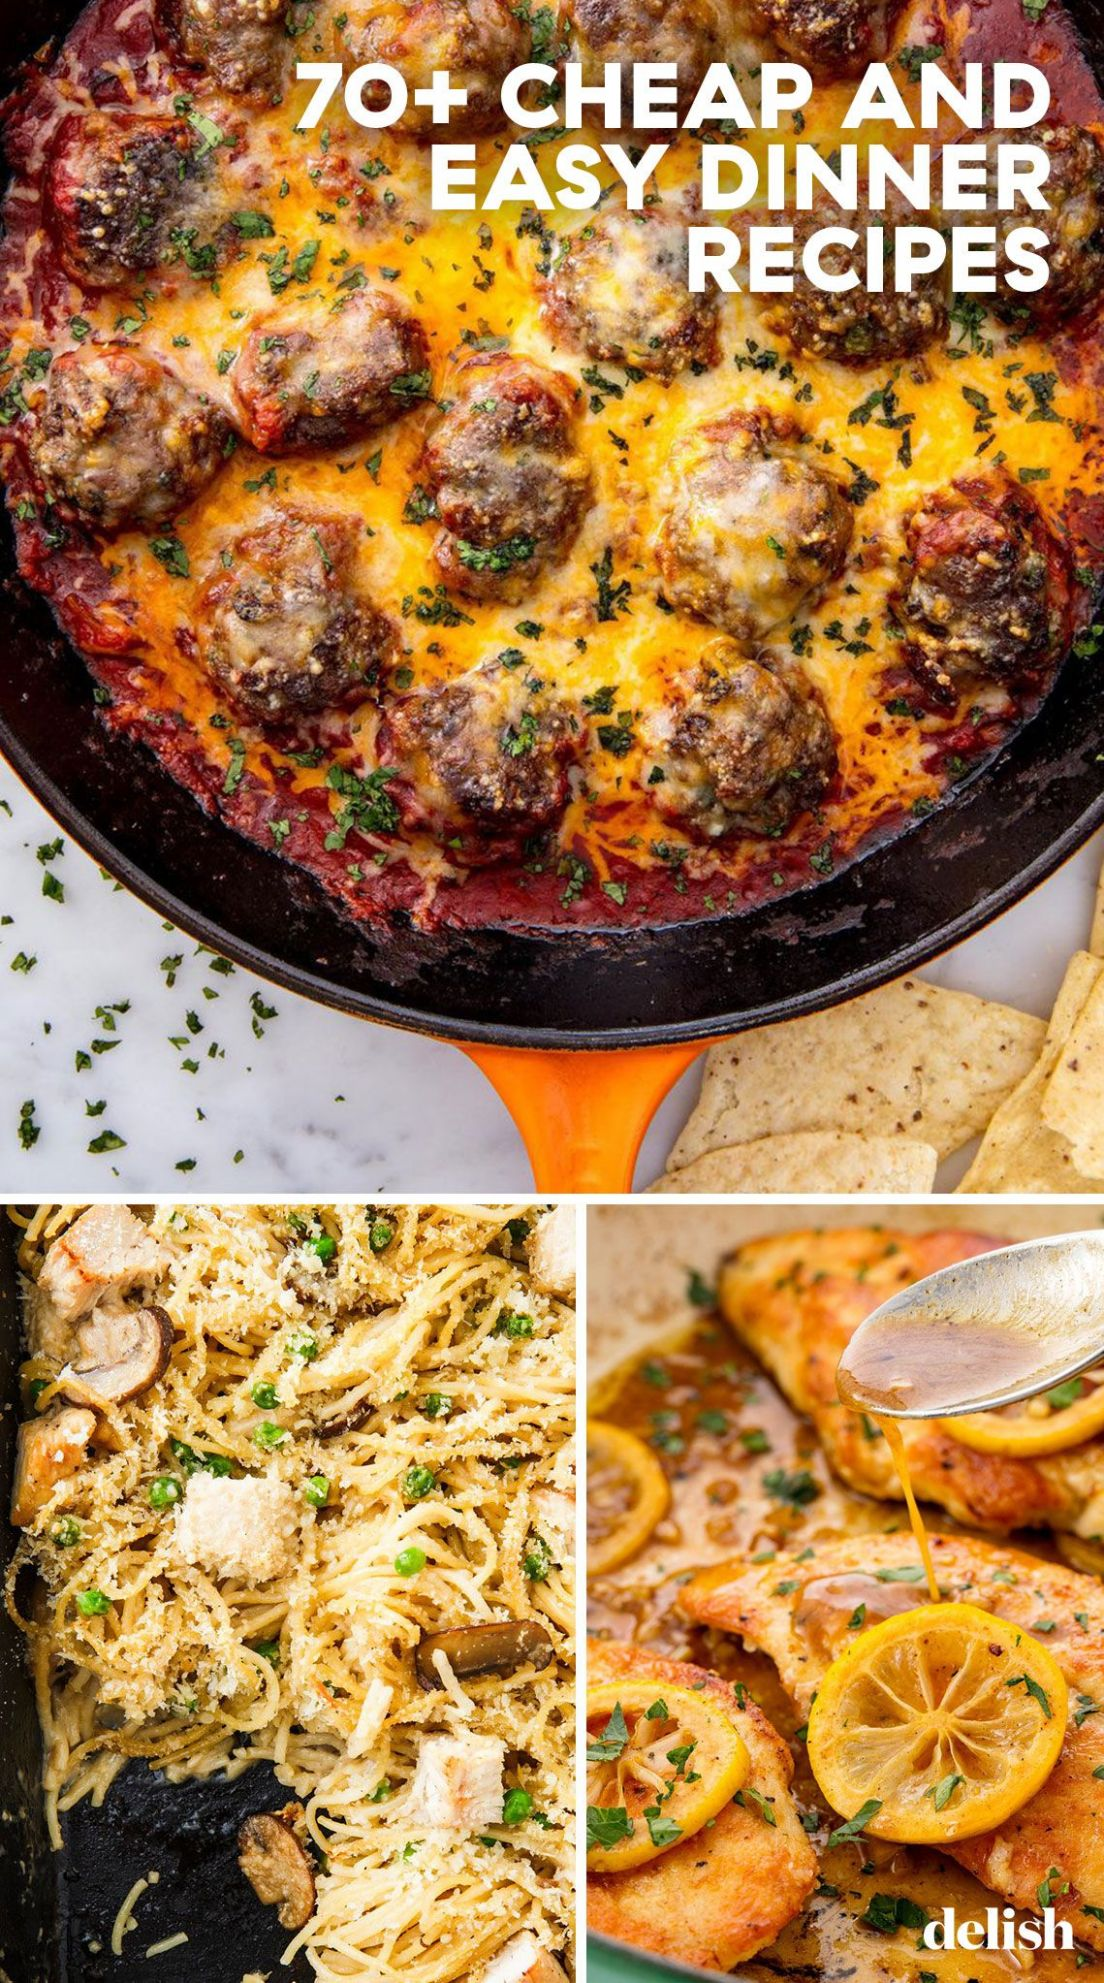 12+ Easy Cheap Dinner Recipes - Inexpensive Dinner Ideas